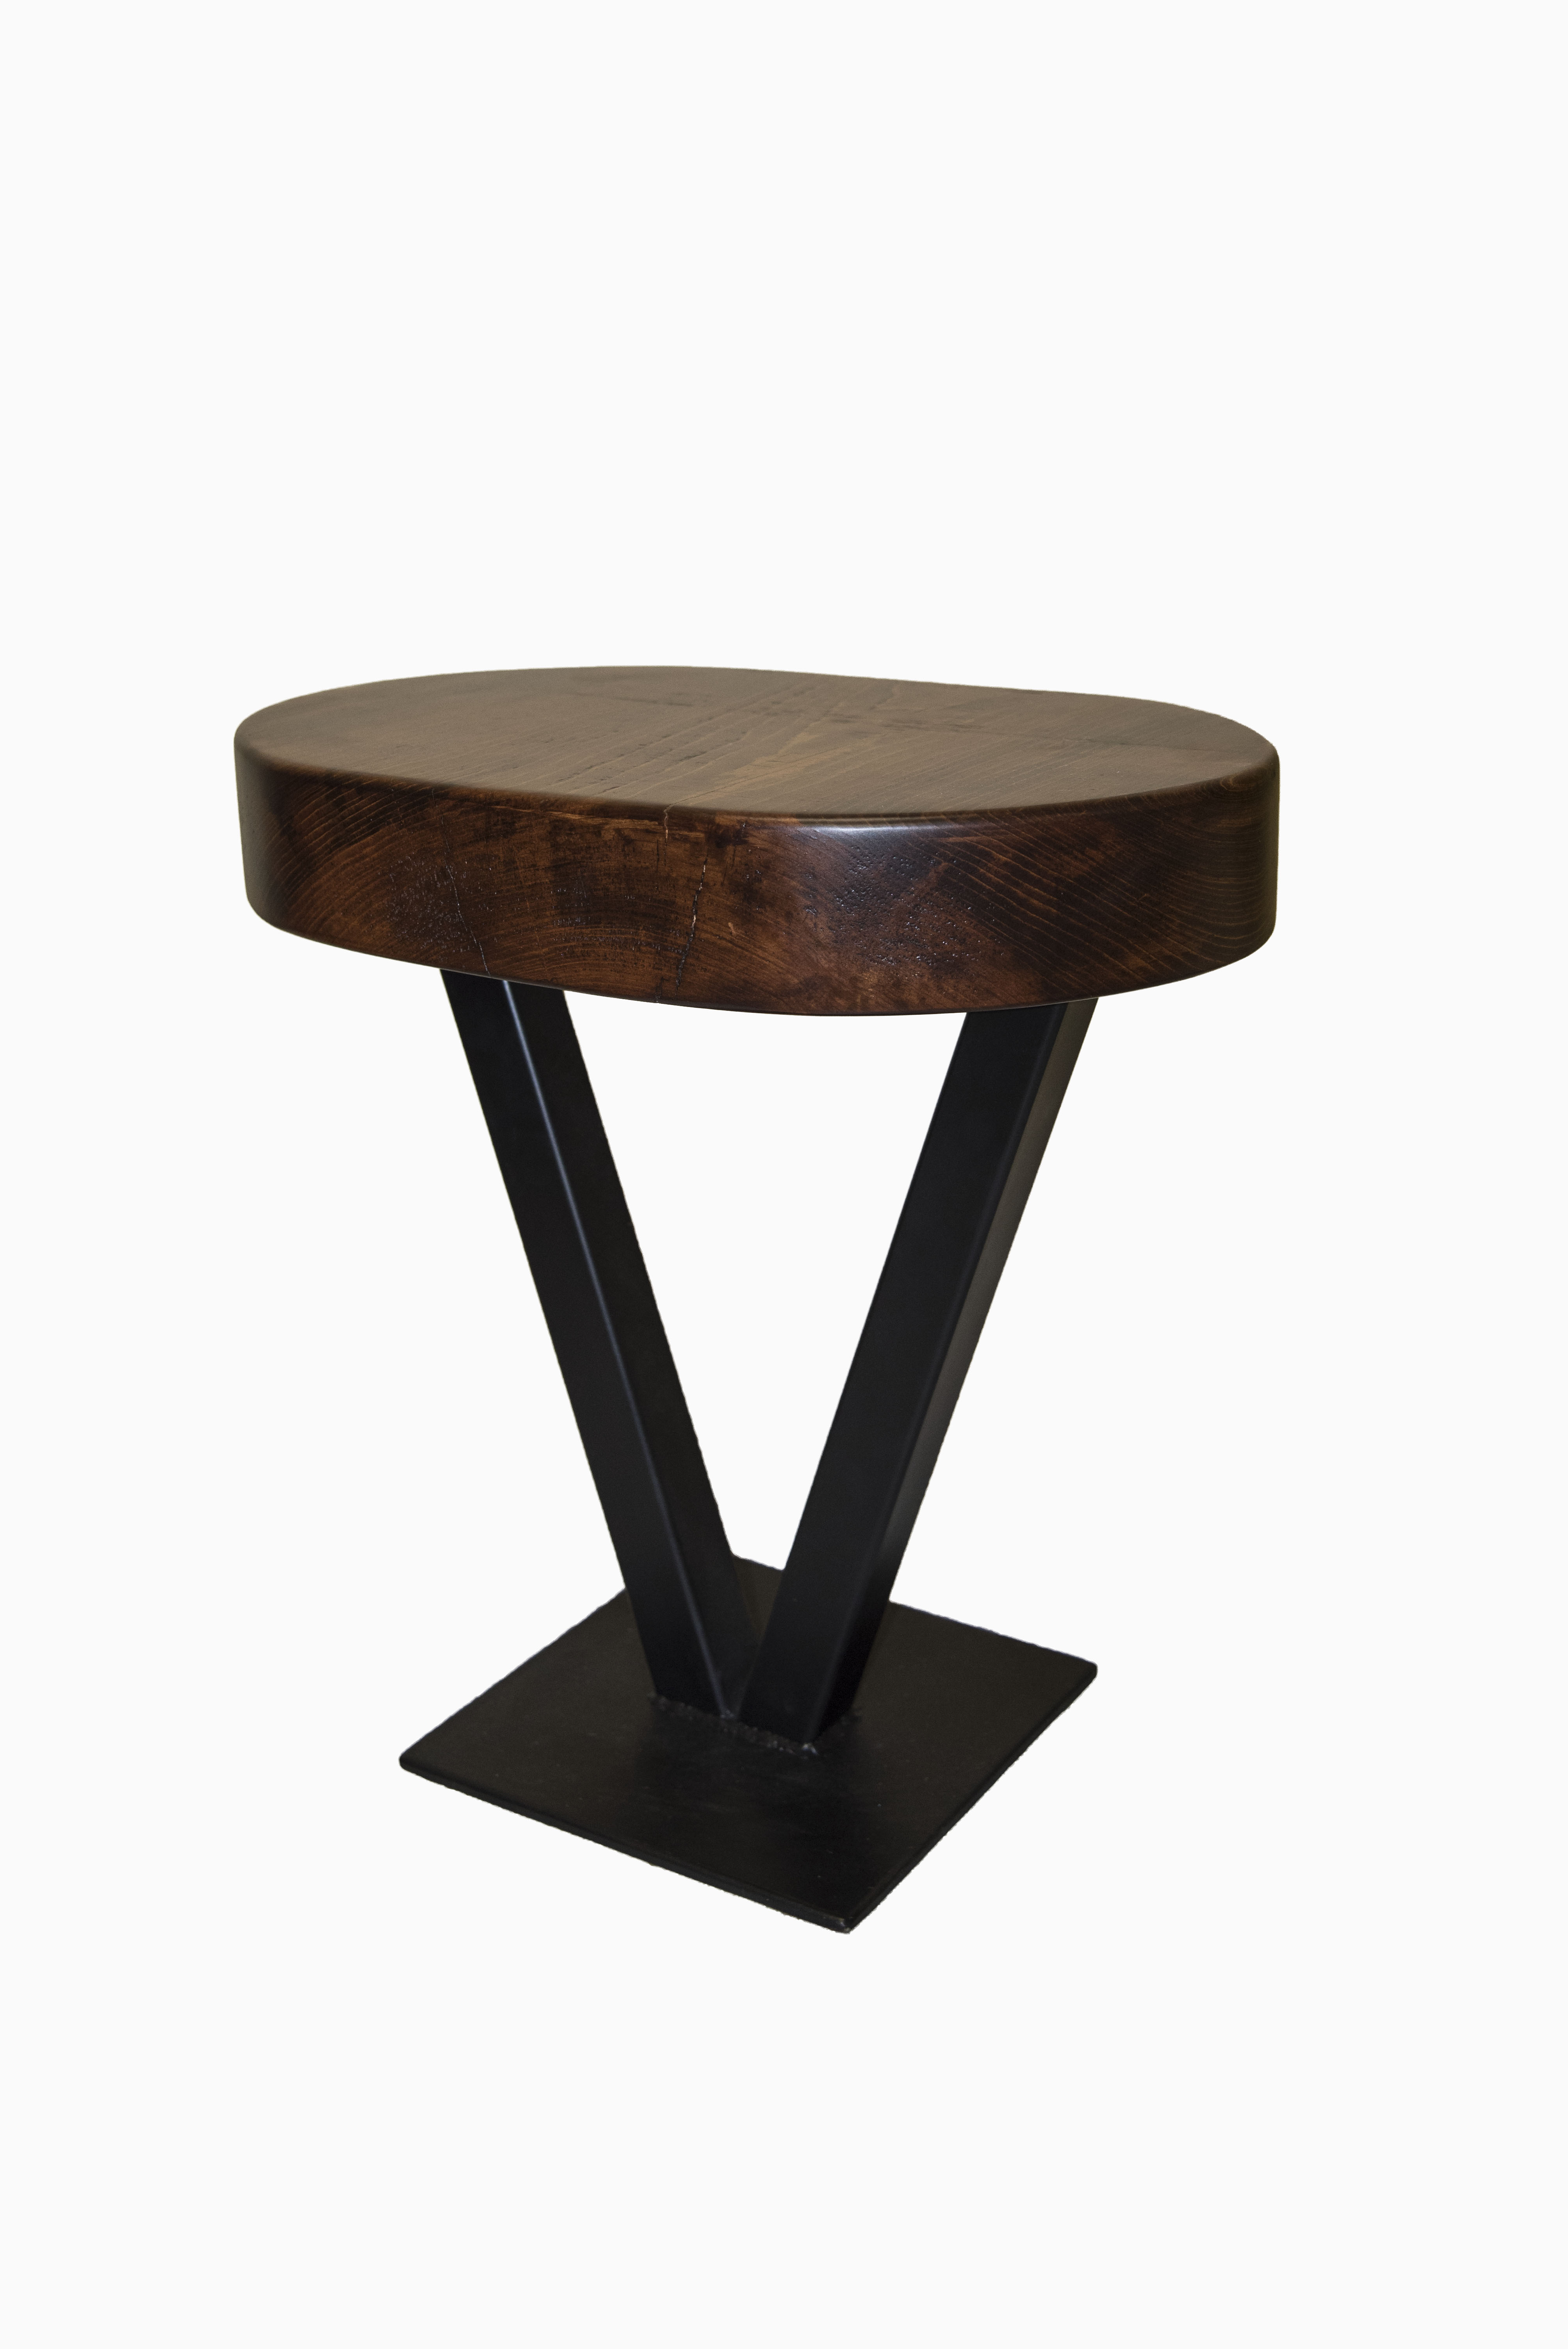 accent tables western furniture company adobeinteriors vee table rustic modern quality cherry wood dining room round distressed coffee oval lucite shabby chic floor lamp natural